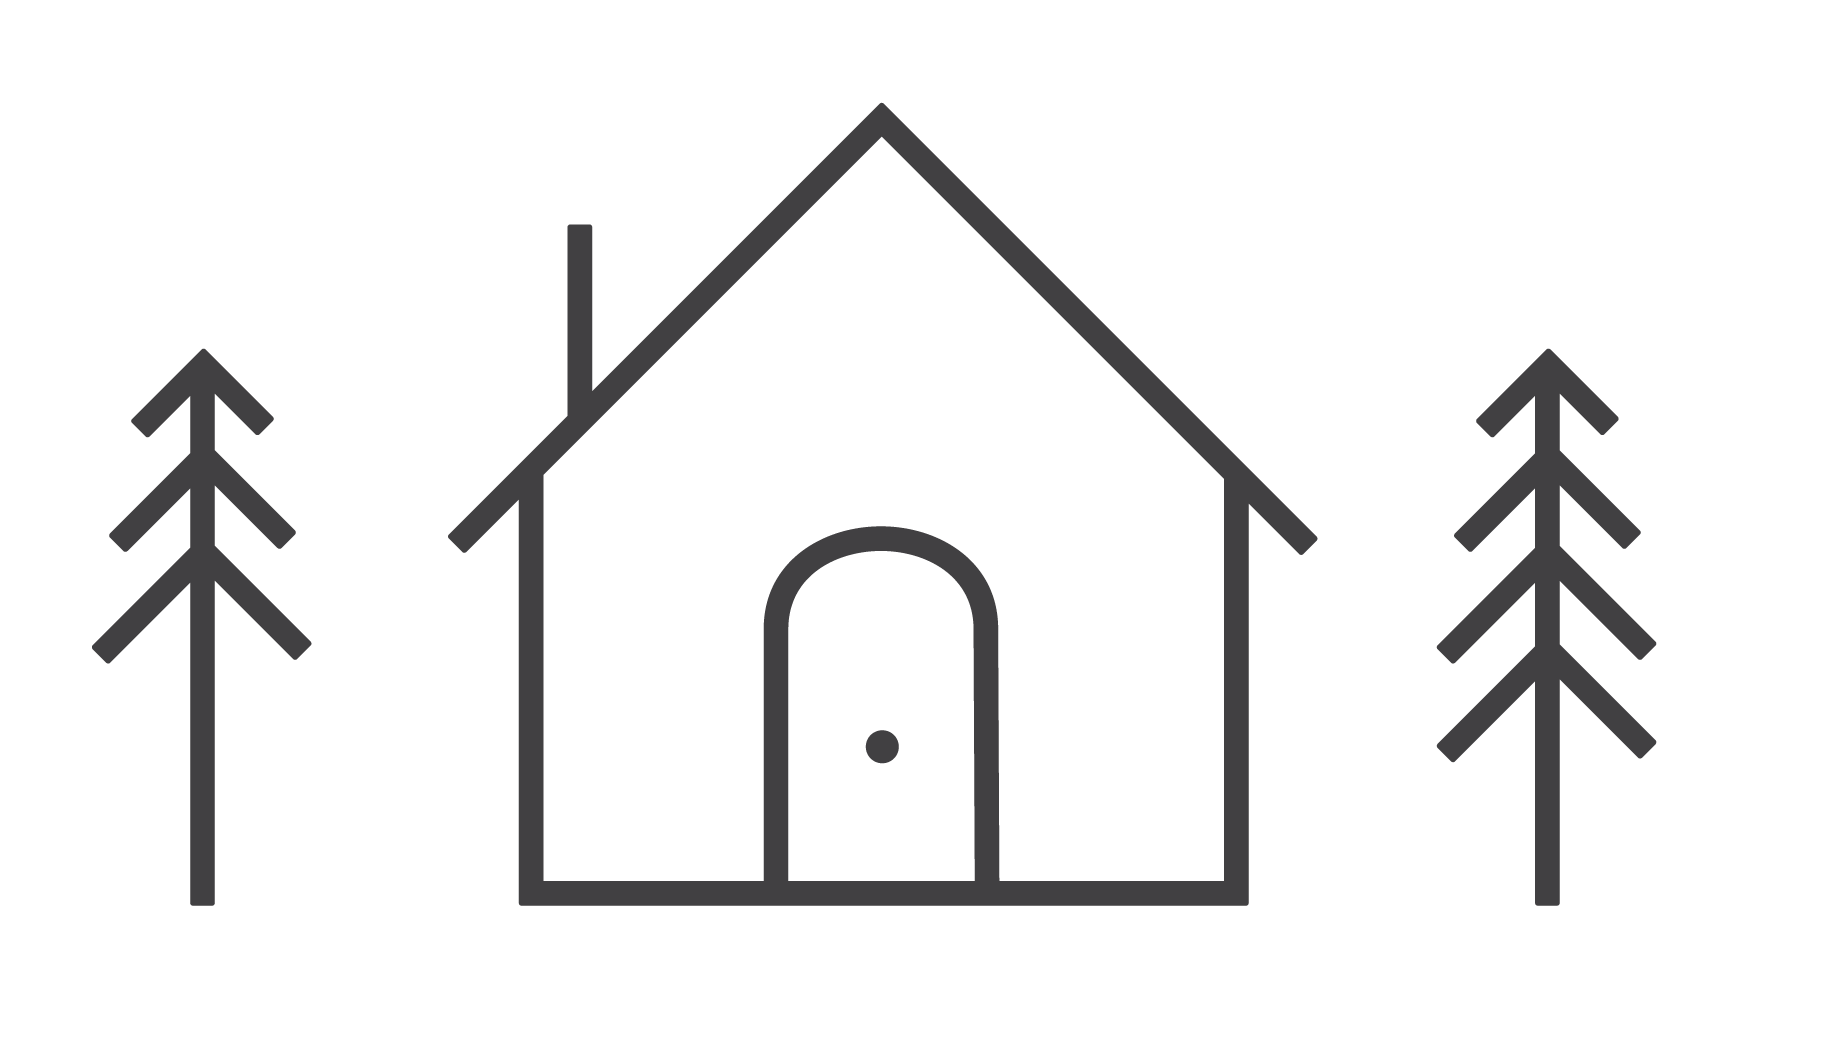 House-icon-PP-Logo-Icon-Charcoal.png#asset:357